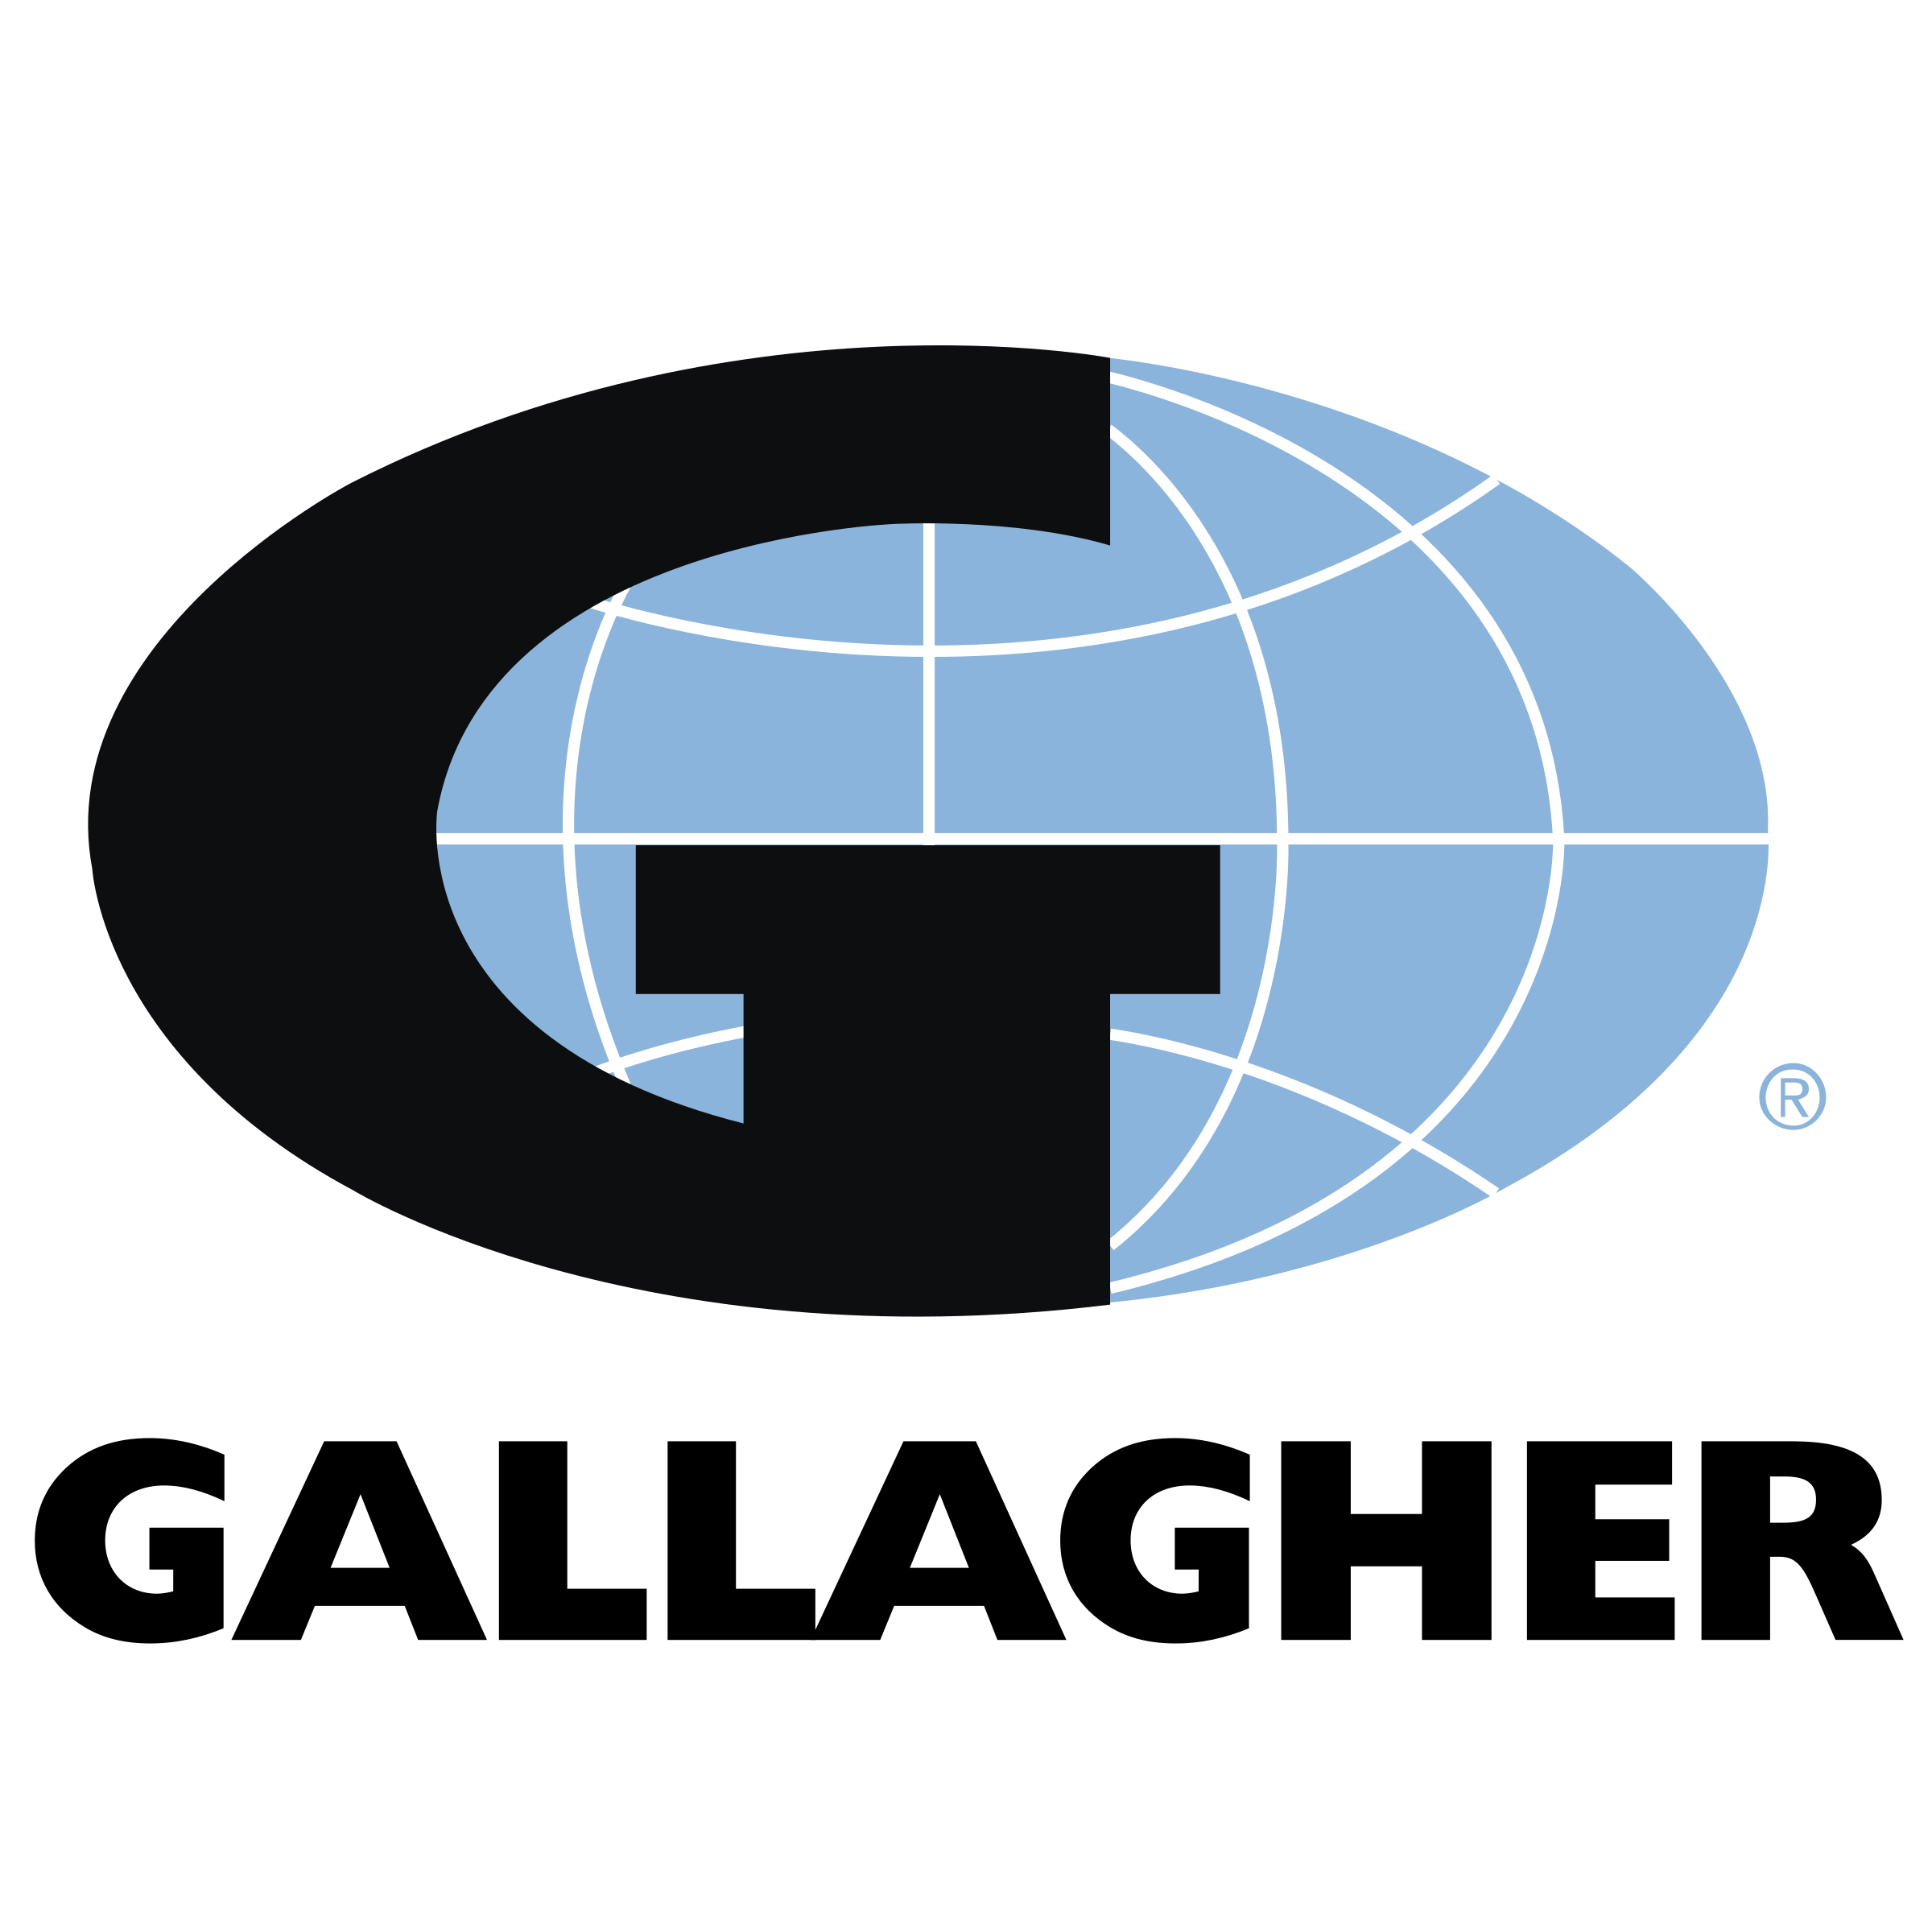 gallagher-1-logo-png-transparent.png